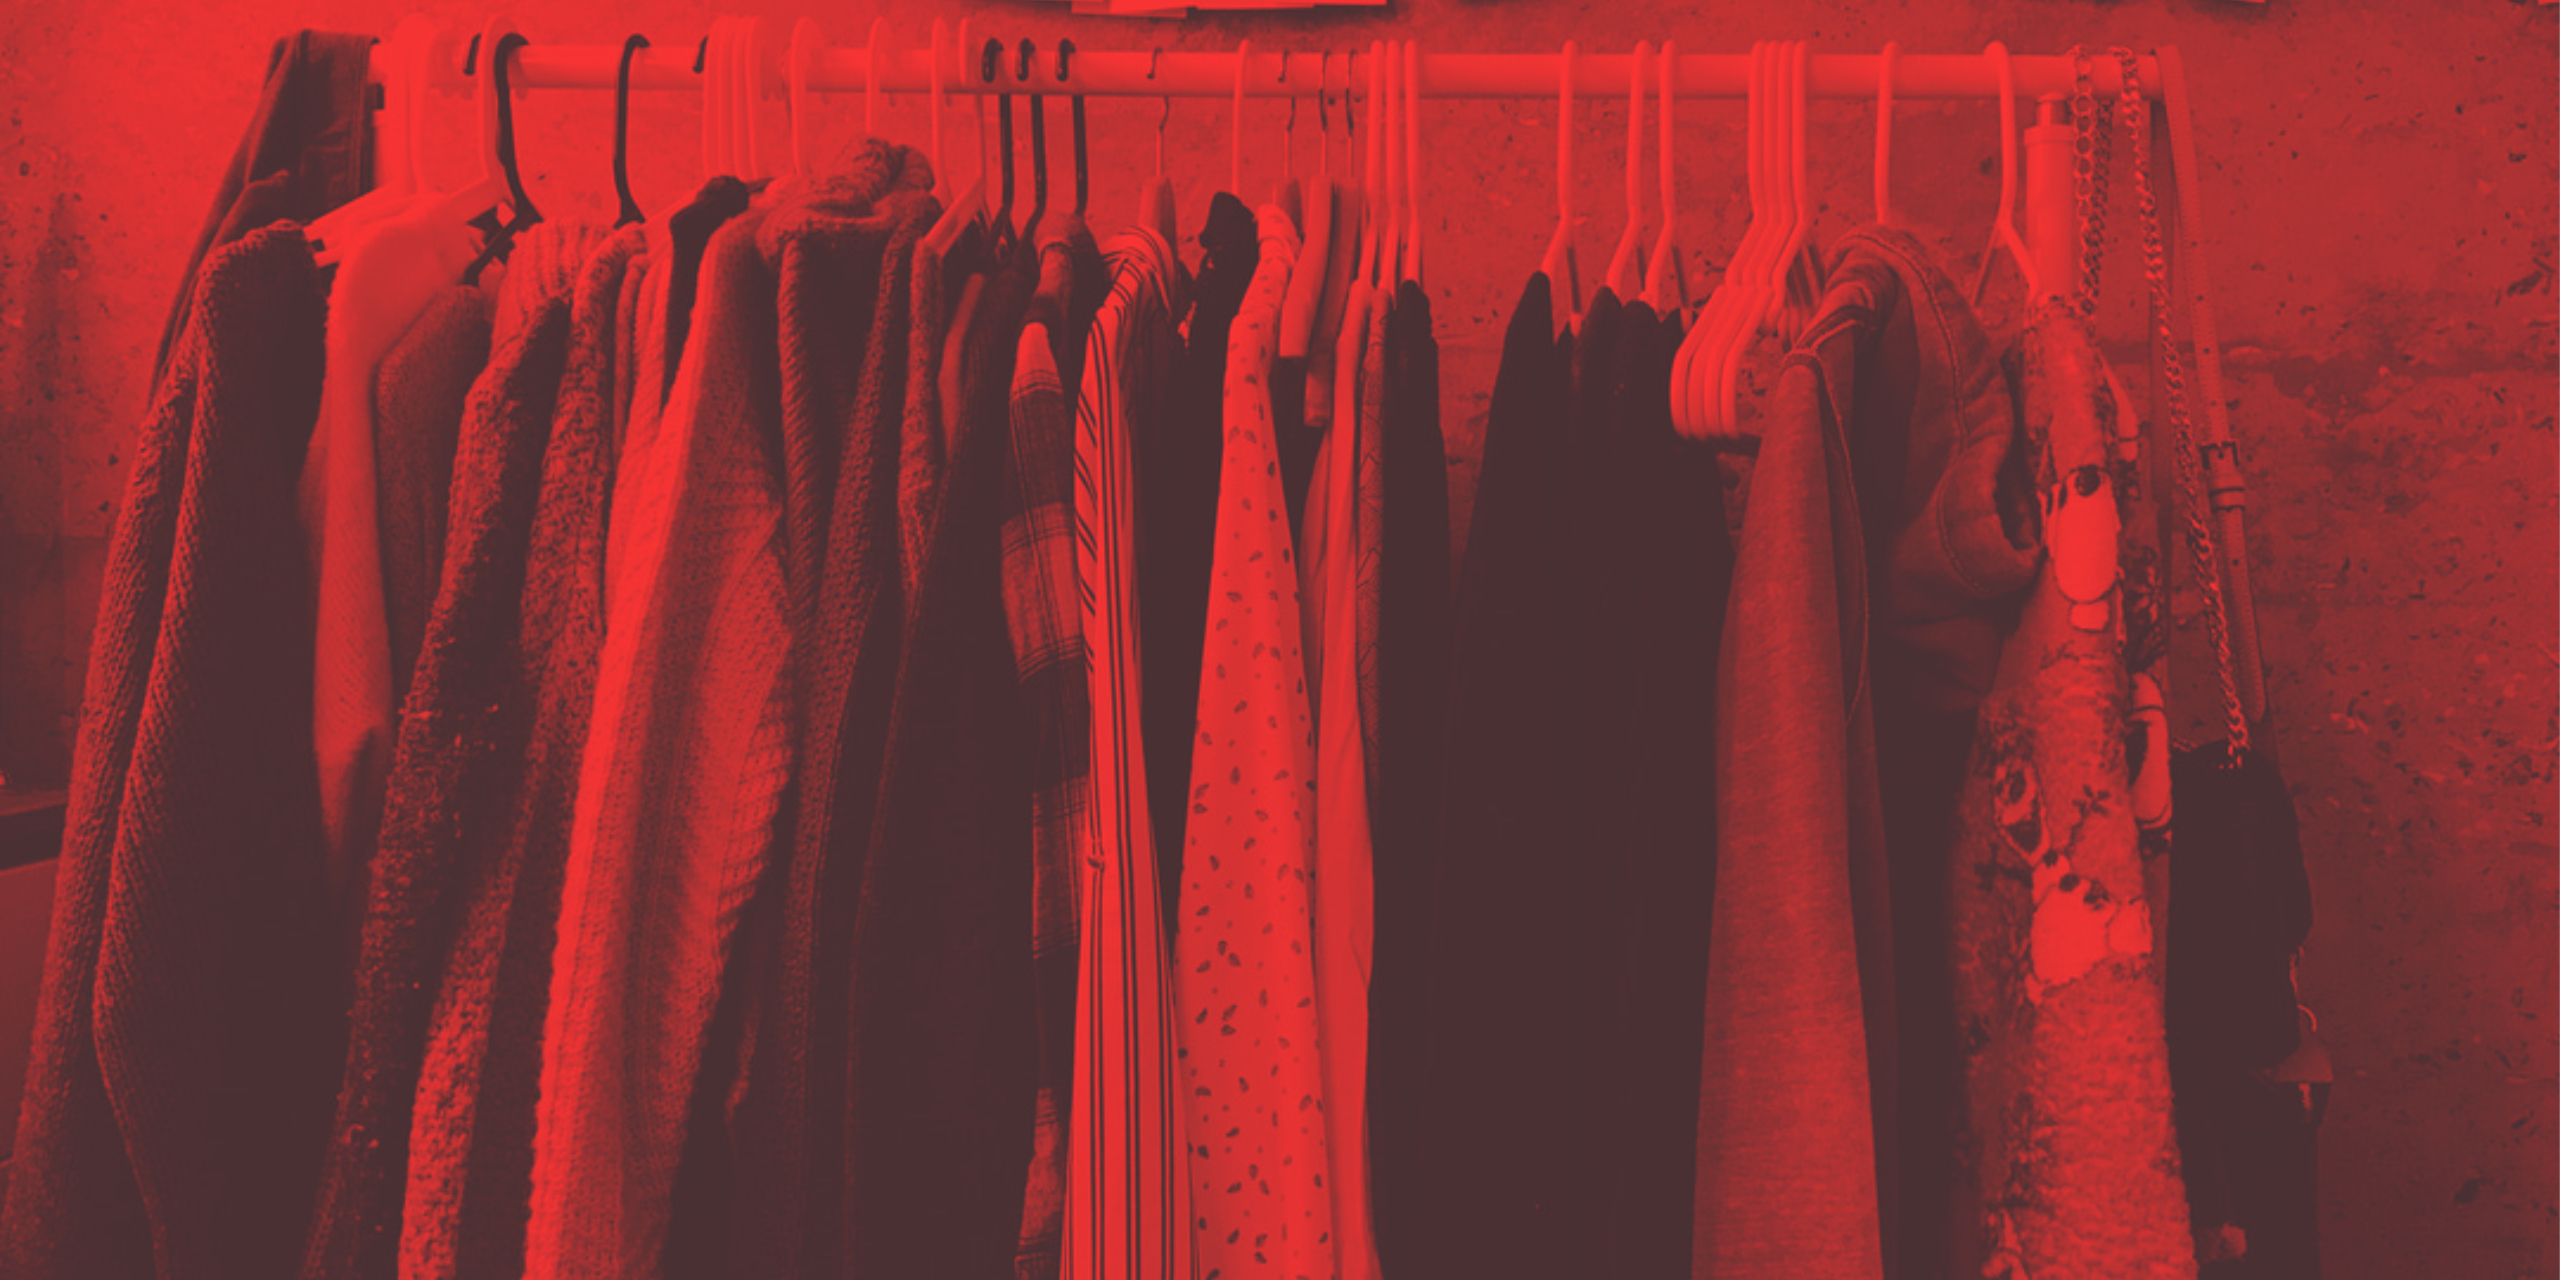 Are You a Closet Quitter?